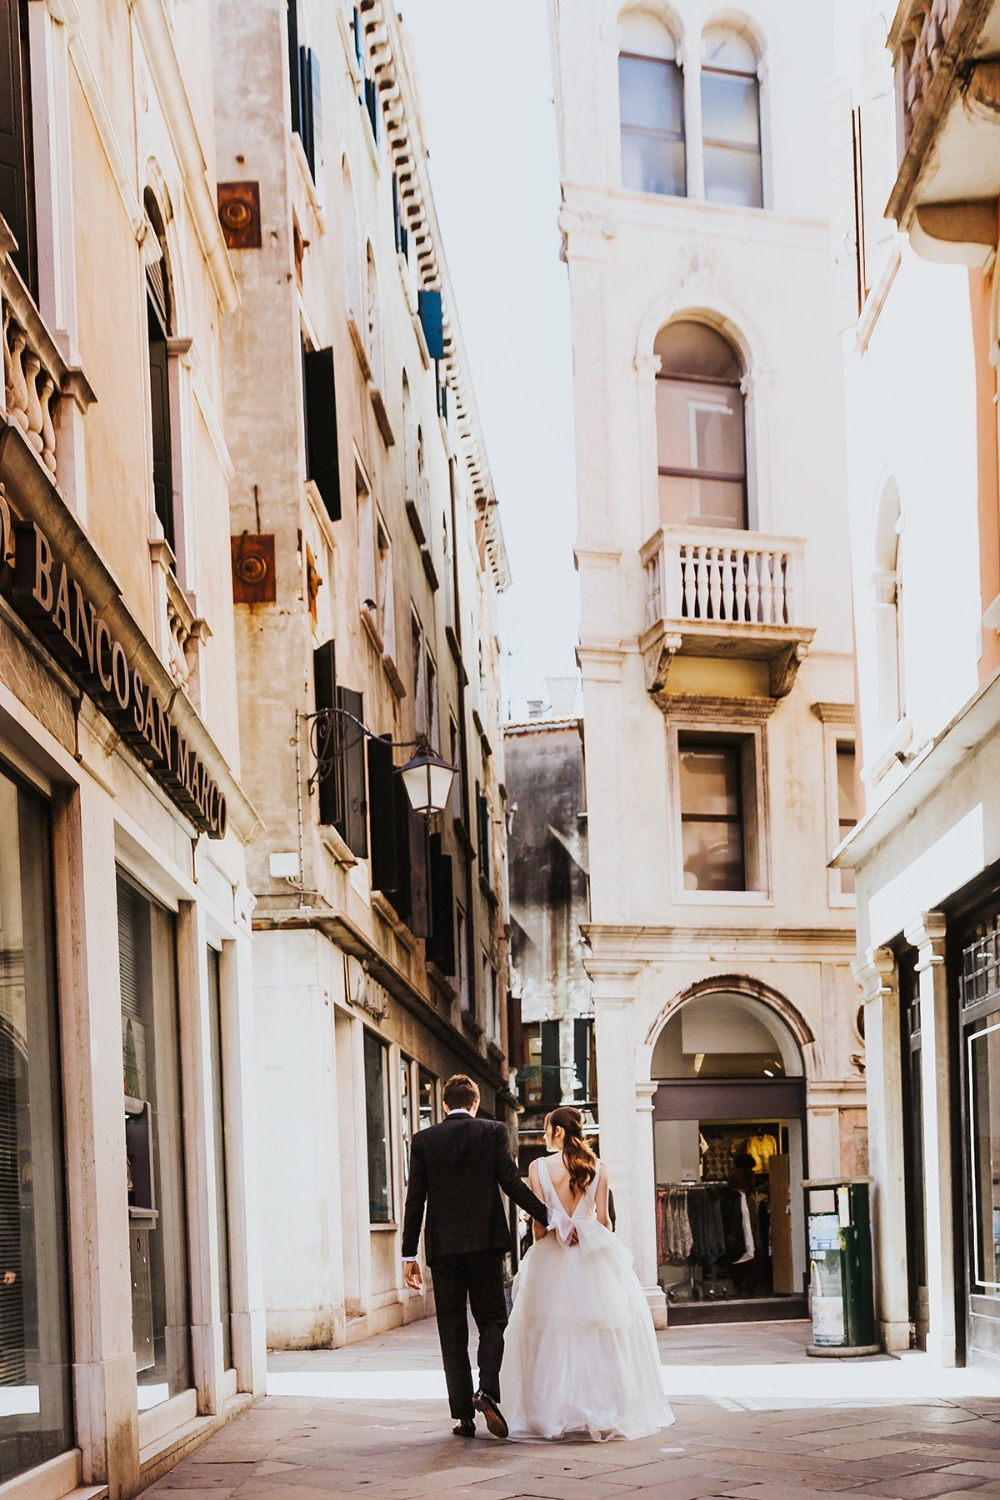 taking a wedding walk in Venice